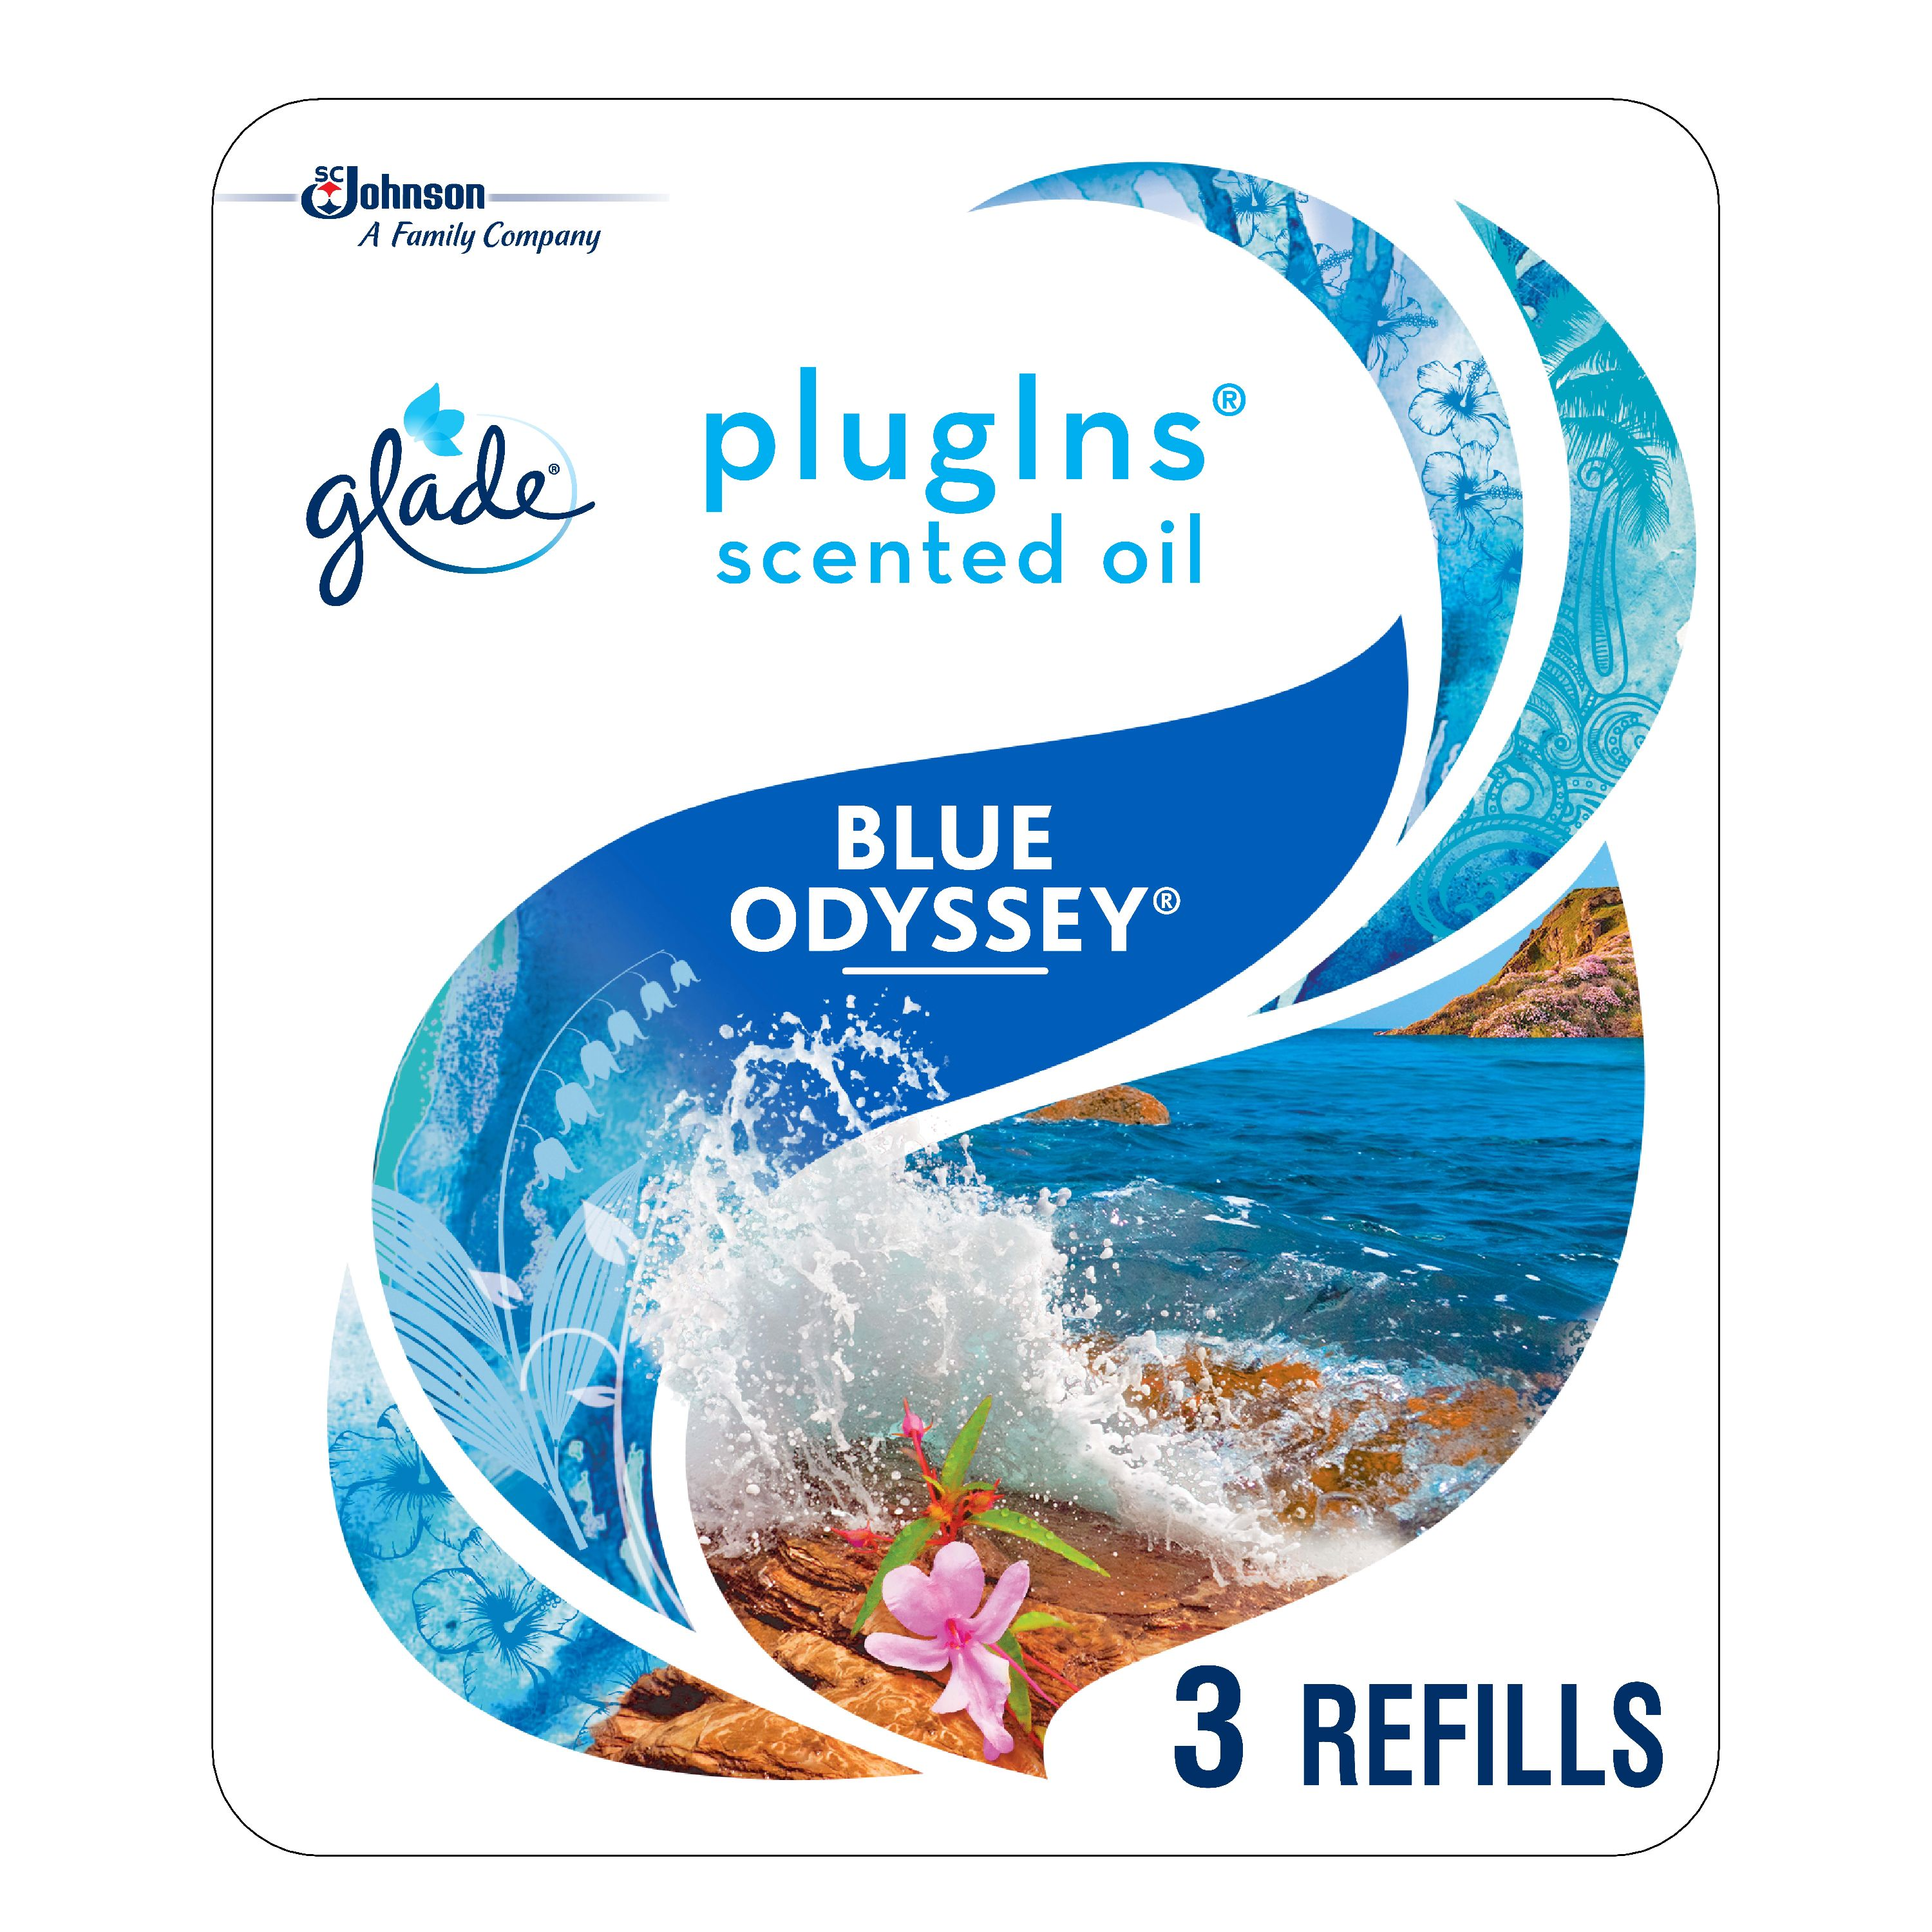 Glade PlugIns Scented Oil Refill Blue Odyssey, Essential Oil Infused Wall Plug In, Up to 50 Days of Continuous Fragrance, 1.34 oz, Pack of 3